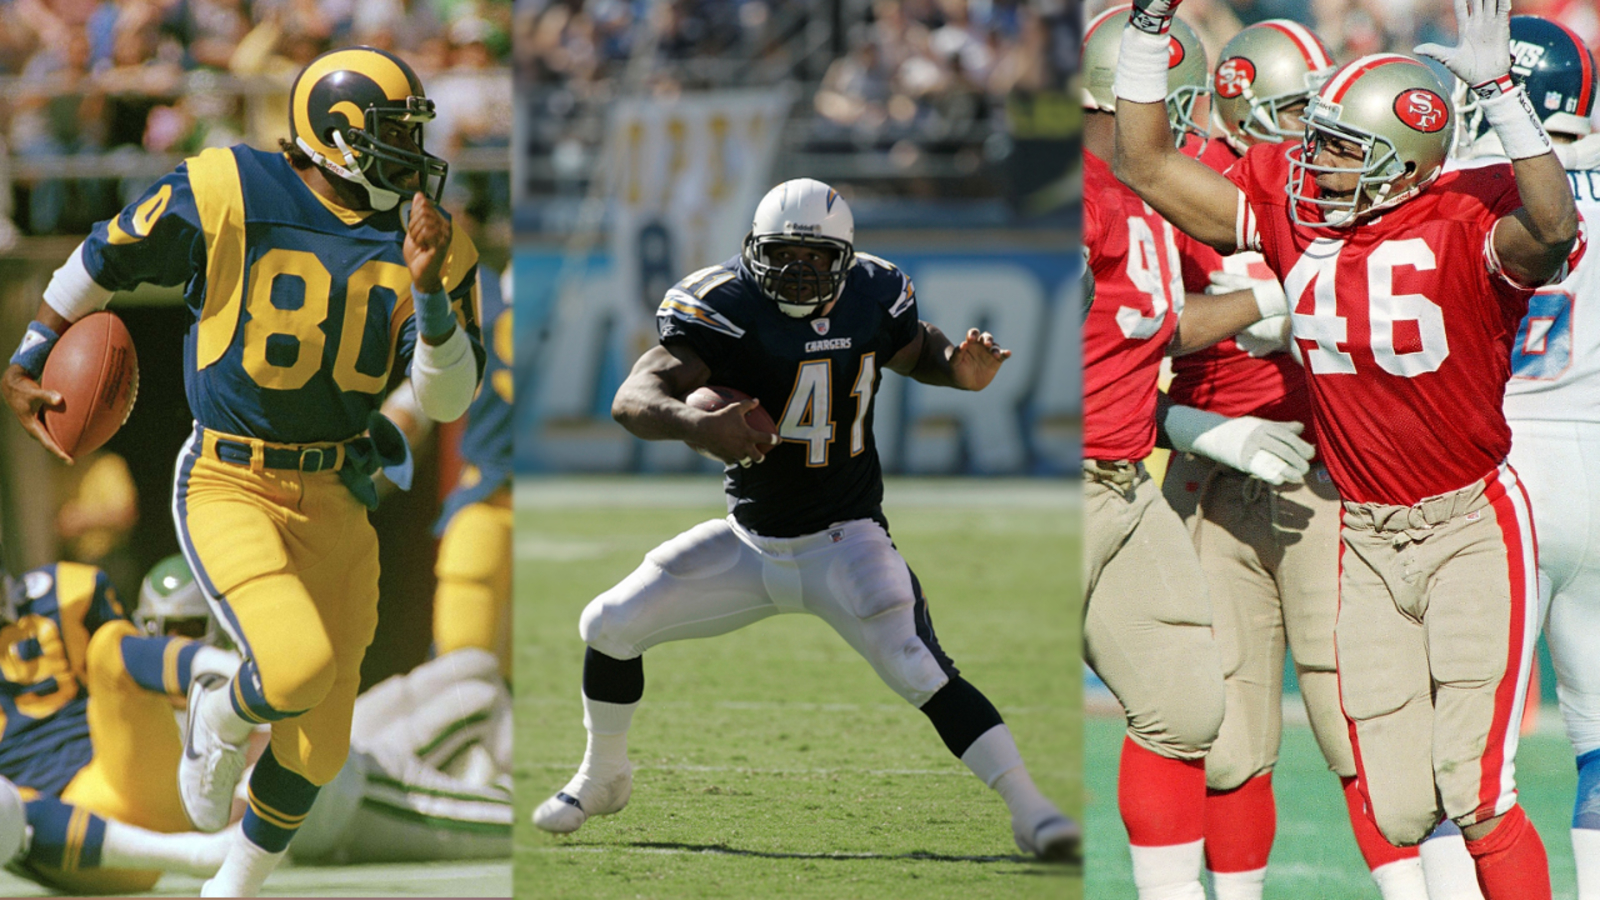 3 Central Valley athletes nominated for NFL Hall of Fame